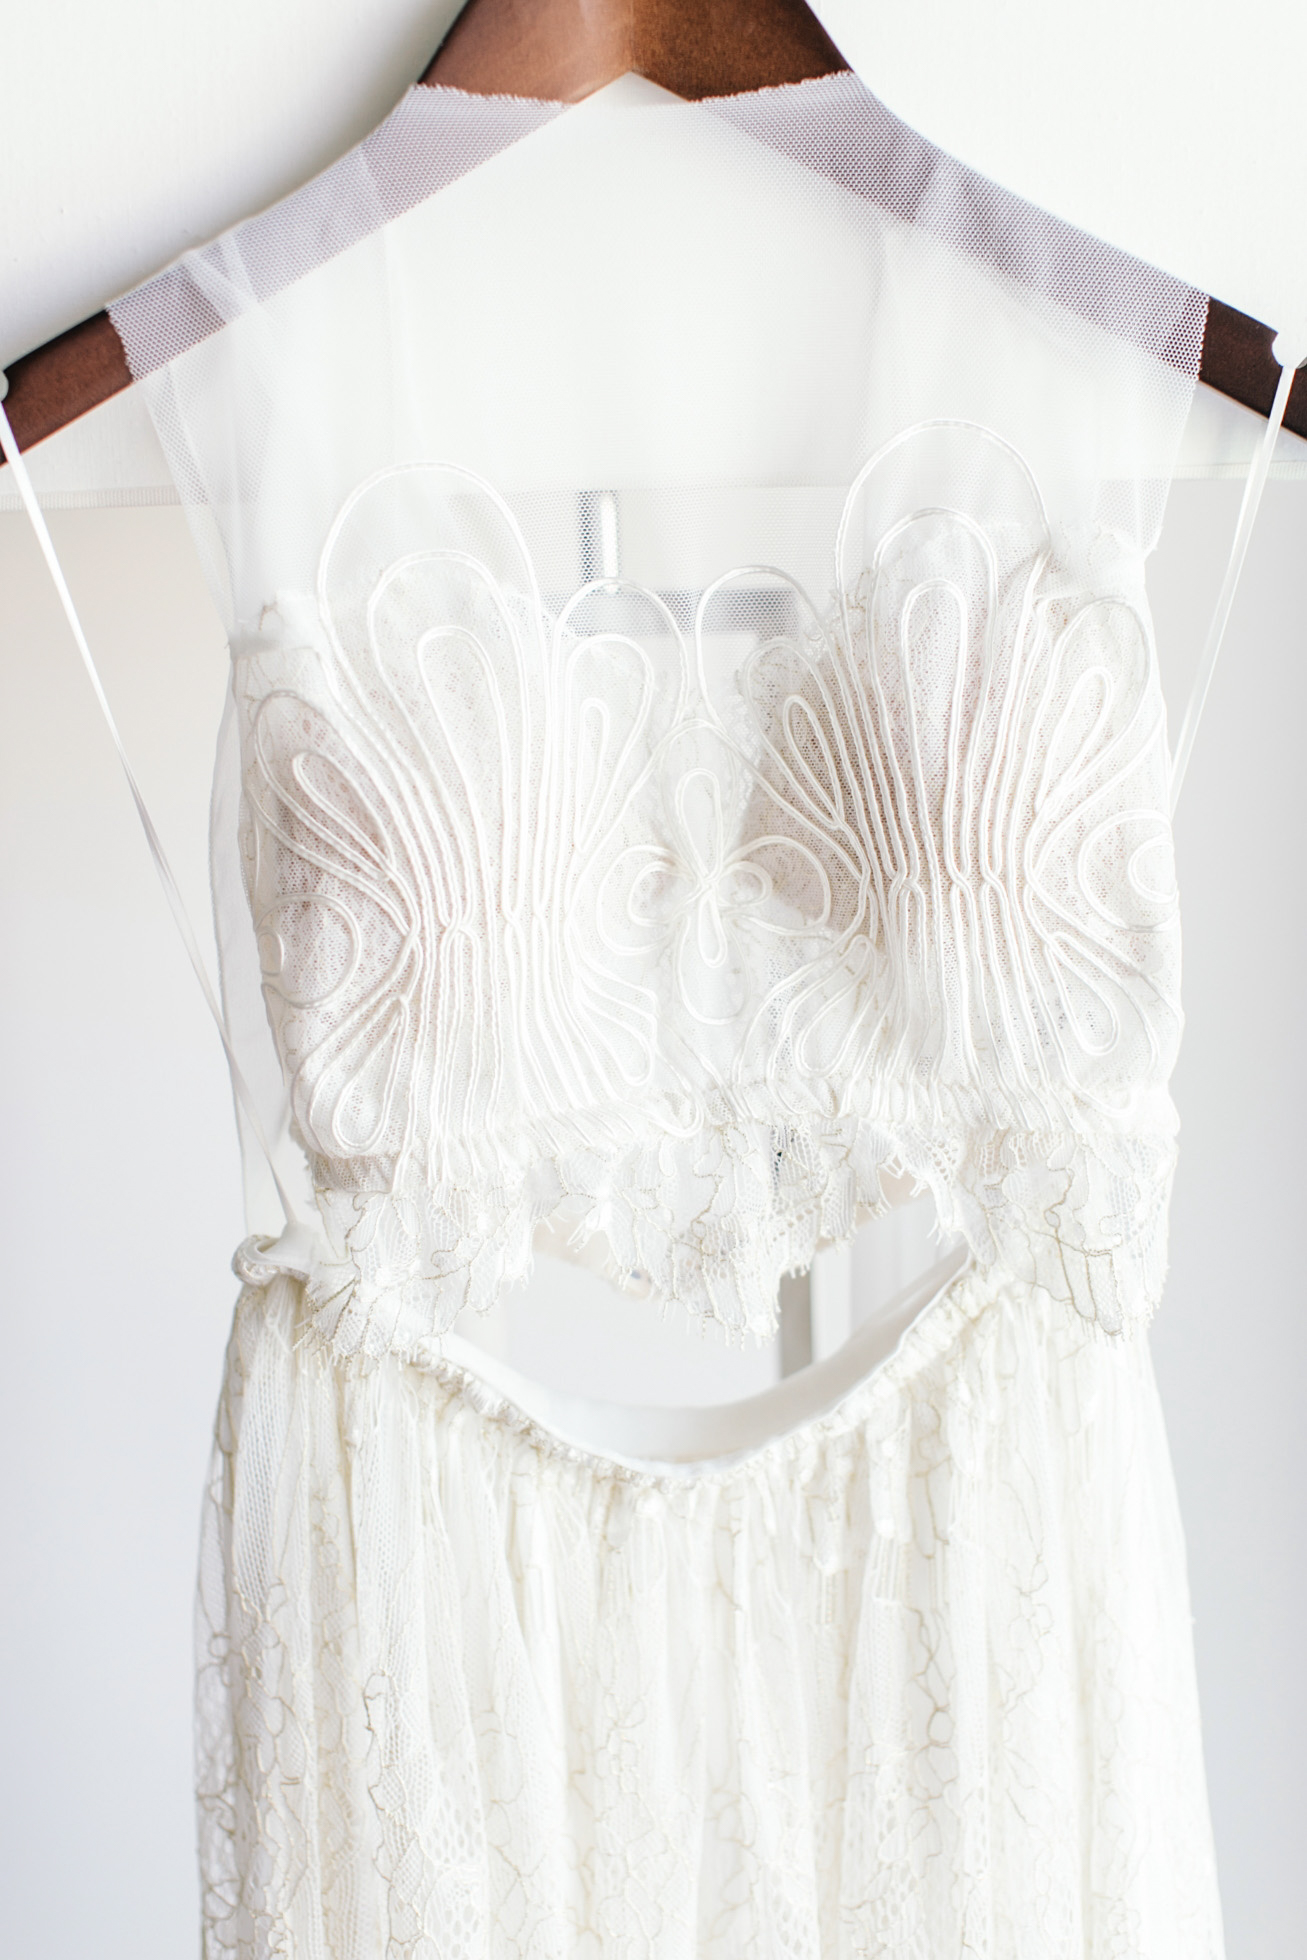 Intricate detail of a two piece boho bridal wedding gown photographer over delicate white background.